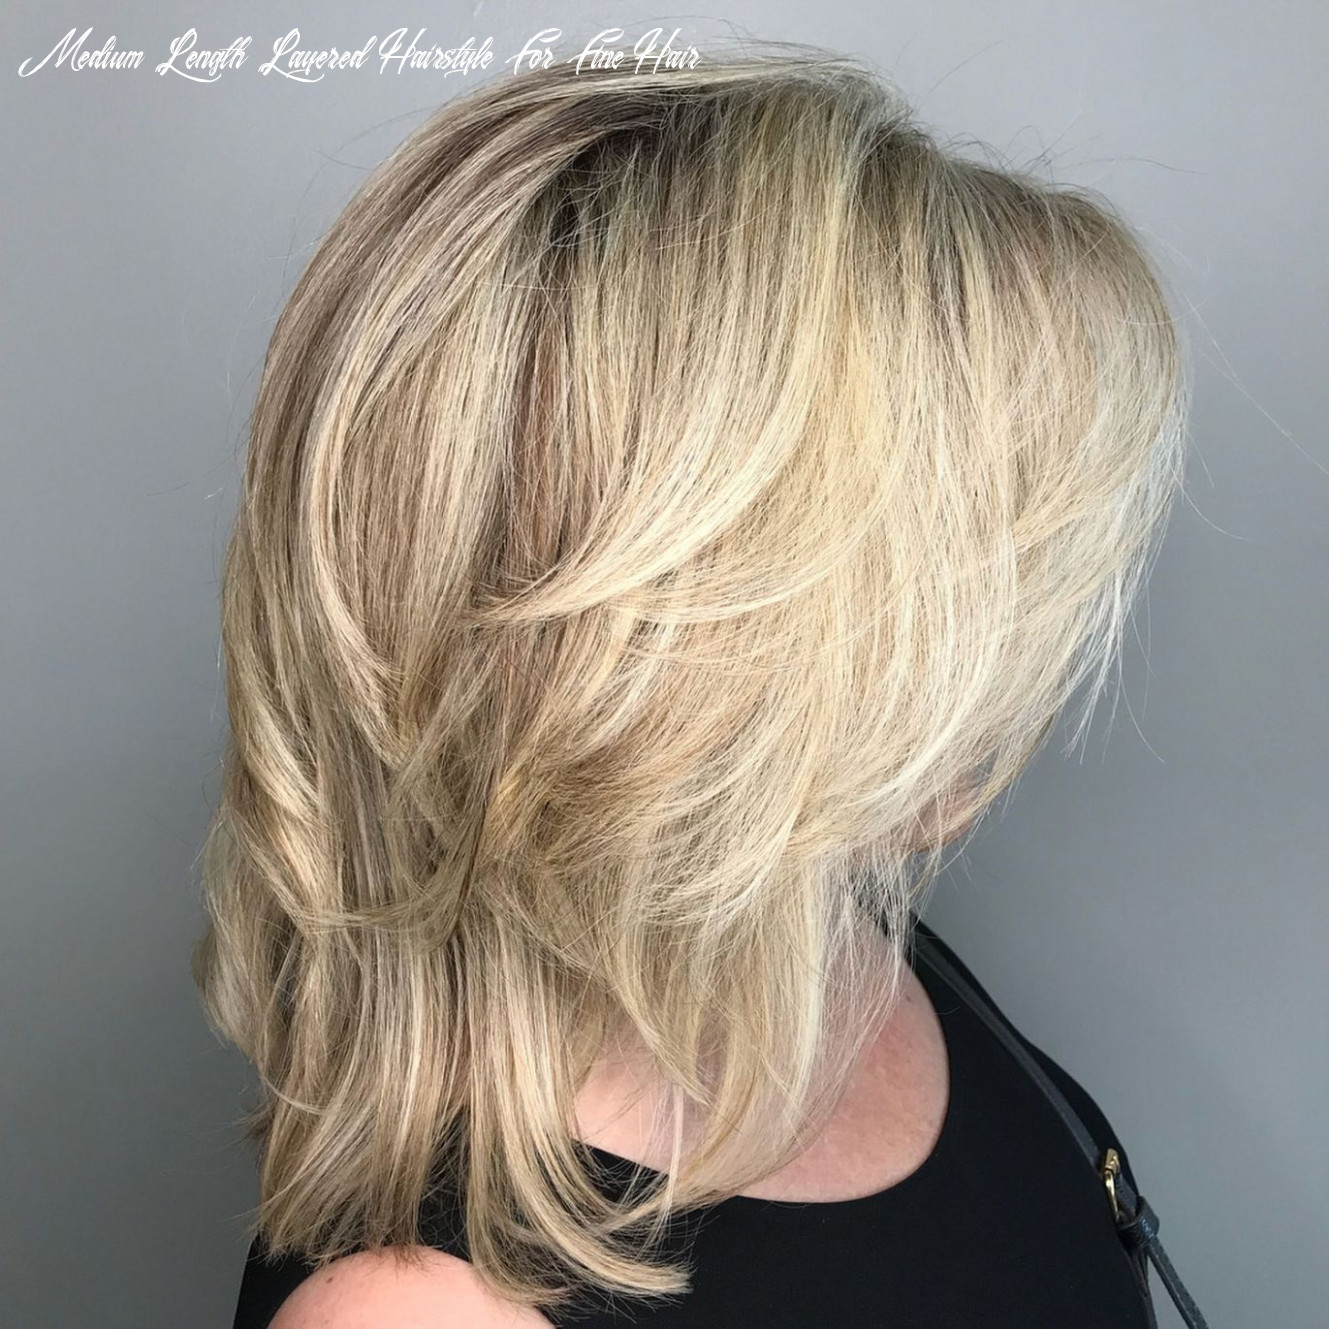 Pin on hair styles medium length layered hairstyle for fine hair